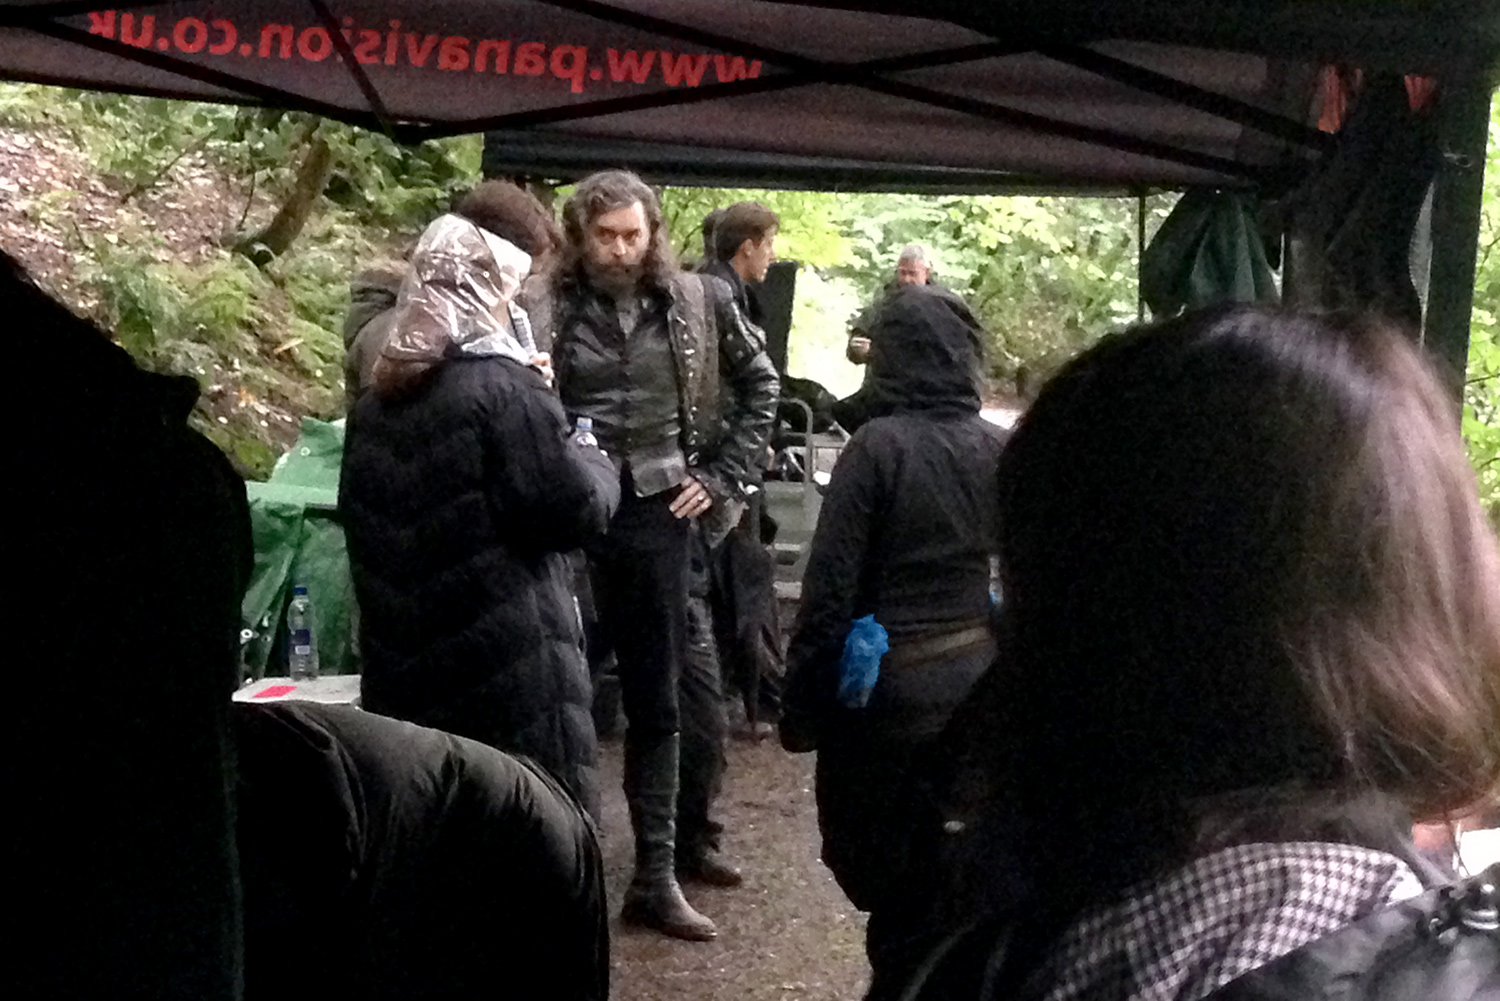 The cast & crew discussing the next scene between takes.